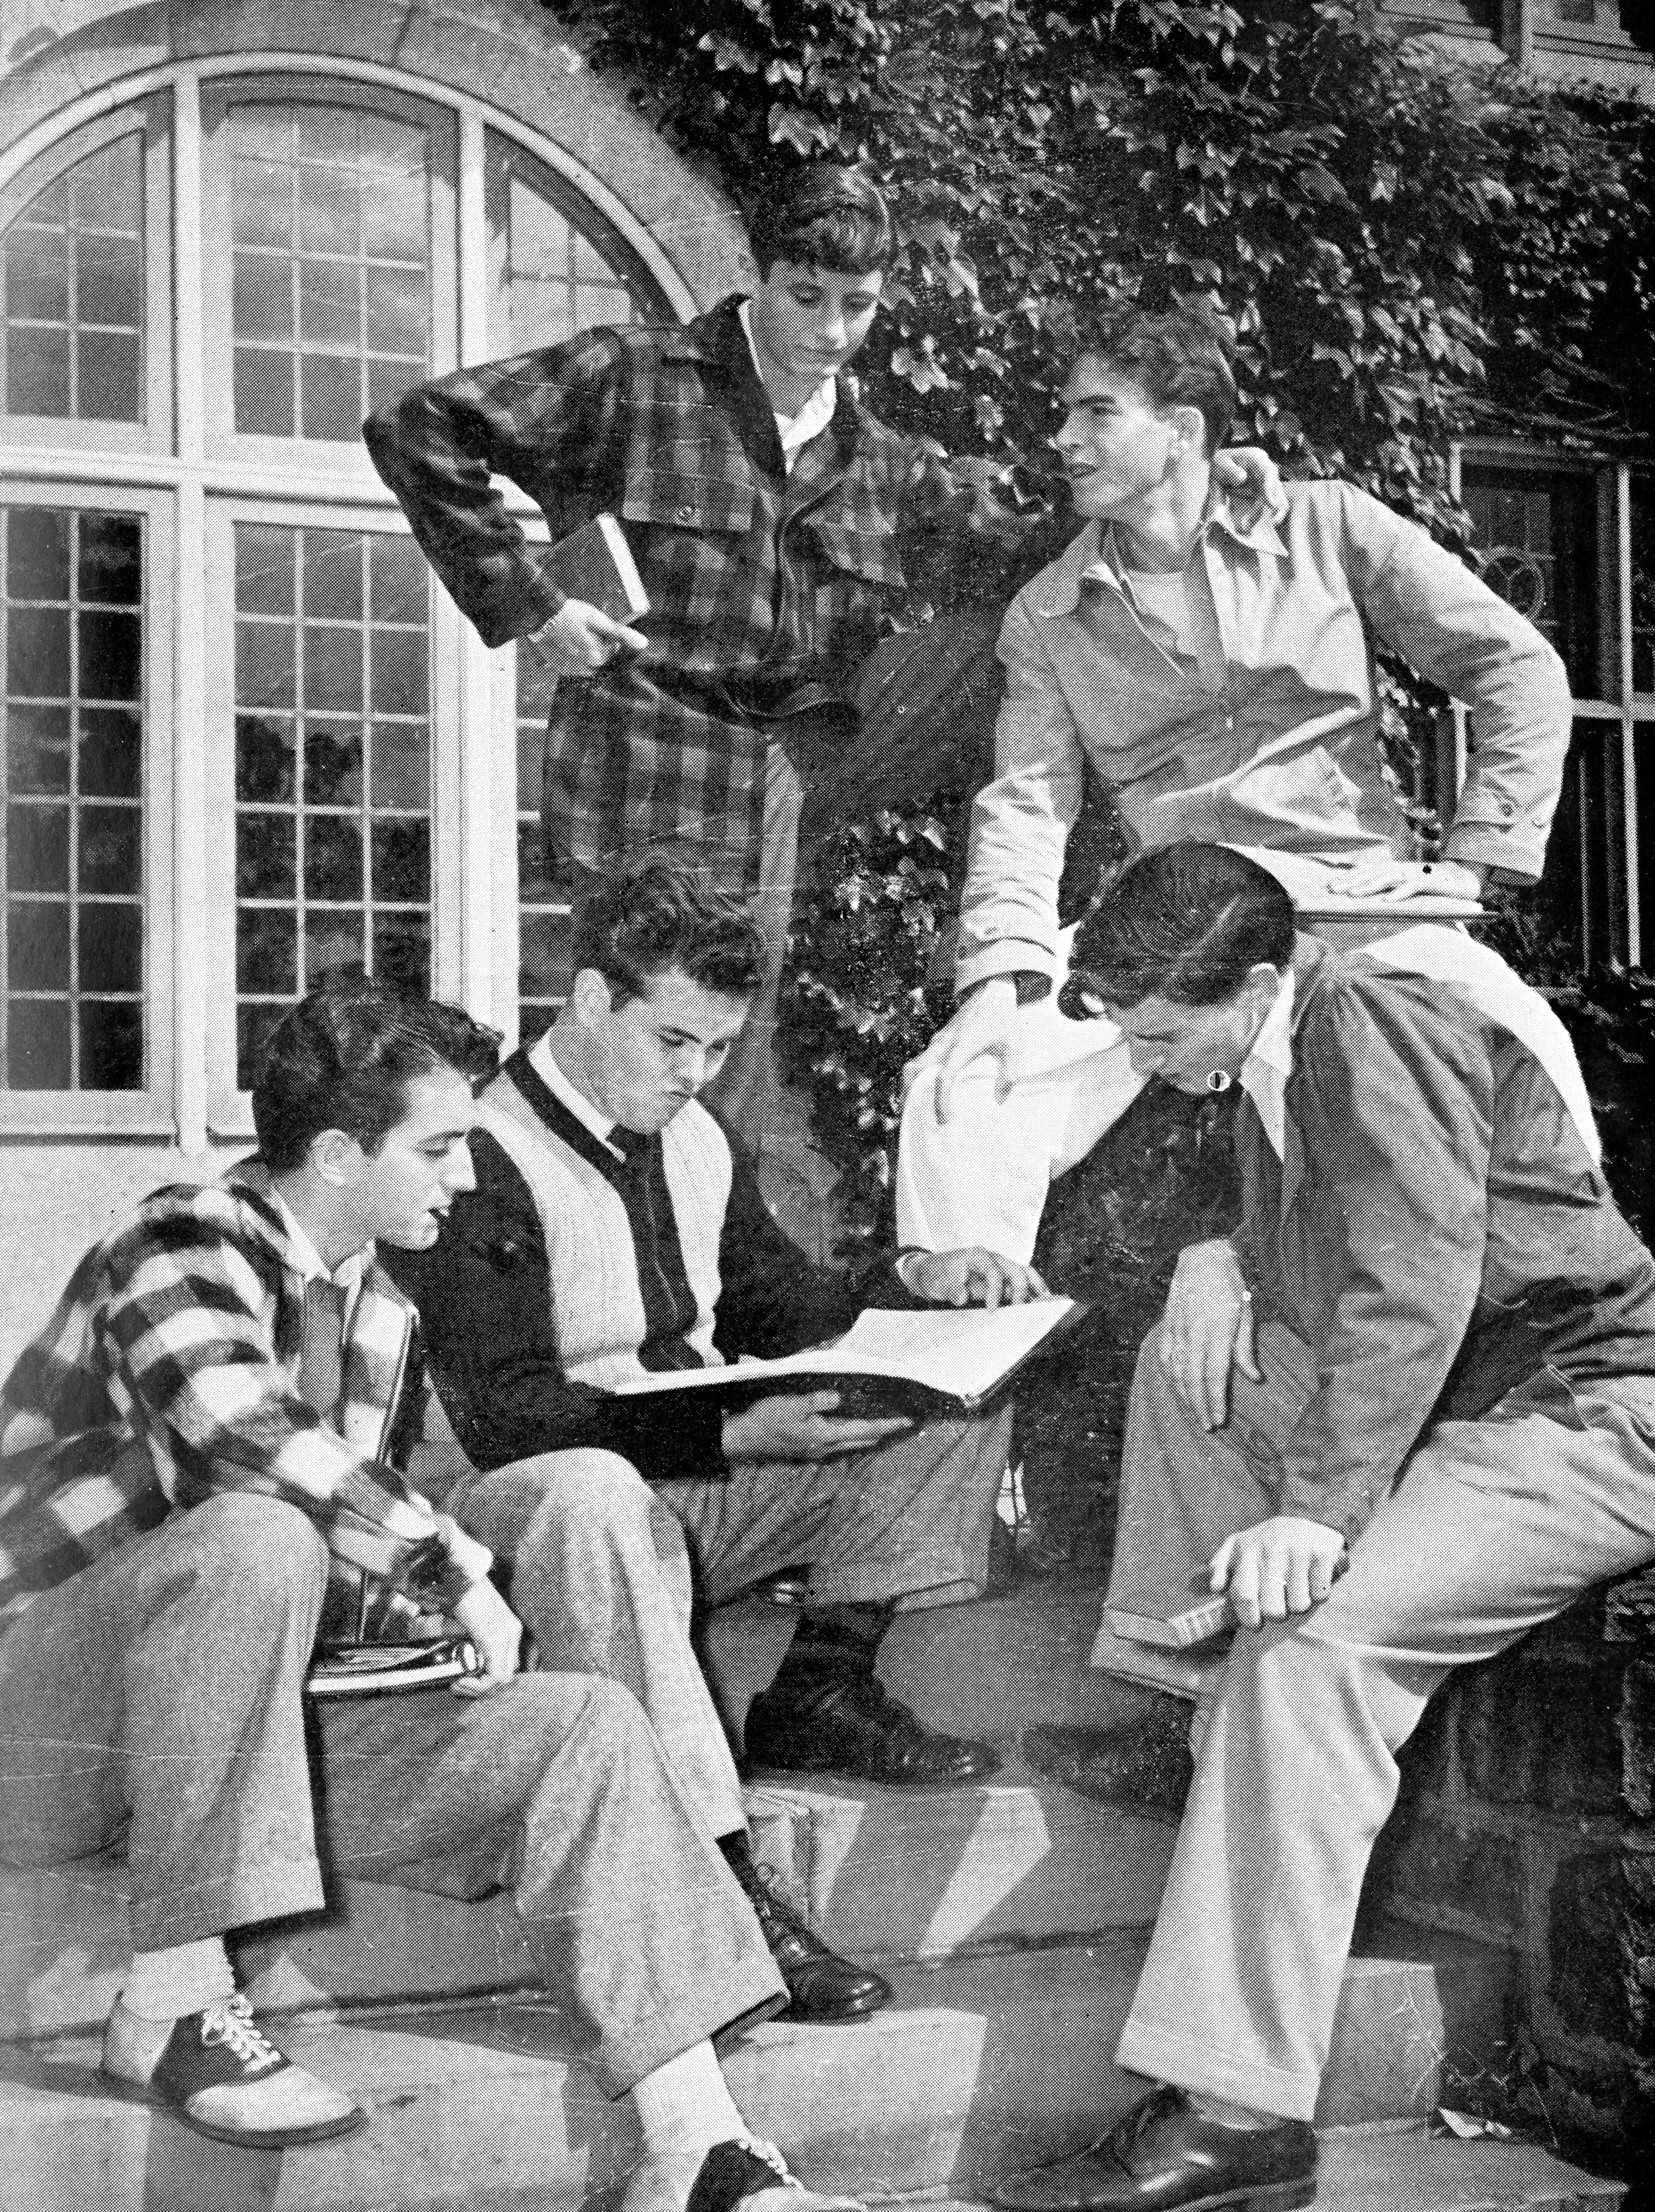 Veterans permitted to attend SLC prior to the college's decision to go co-ed contemplate course offerings  on the steps of Westlands in 1946. Photo courtesy Sarah Lawrence College Archives from the Sarah Lawrence Alumnae/i Magazine.